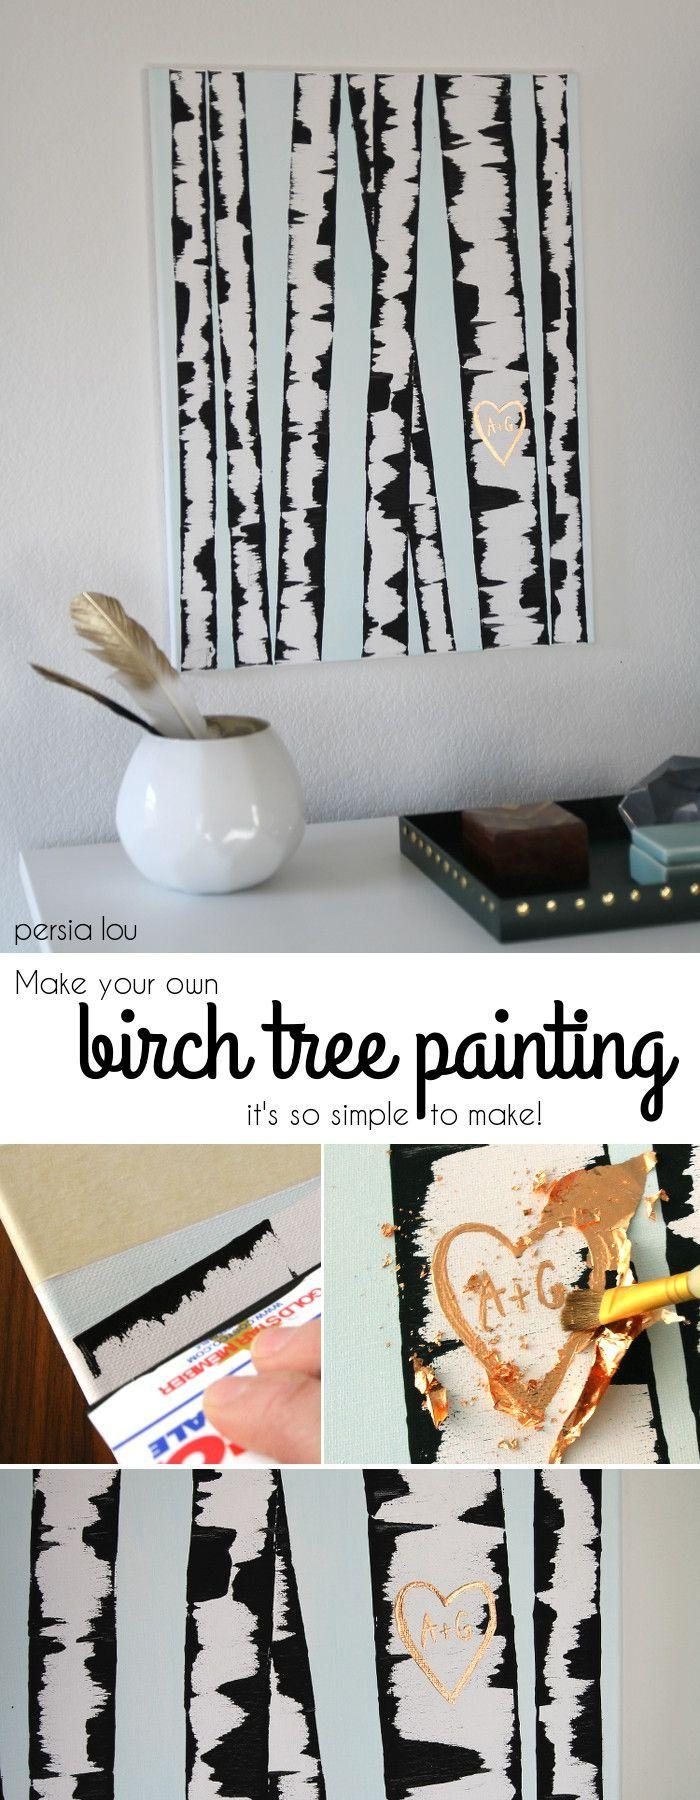 Best 20+ Canvas Wall Art Ideas On Pinterest—No Signup Required With Regard To Cheap Big Wall Art (Image 5 of 20)